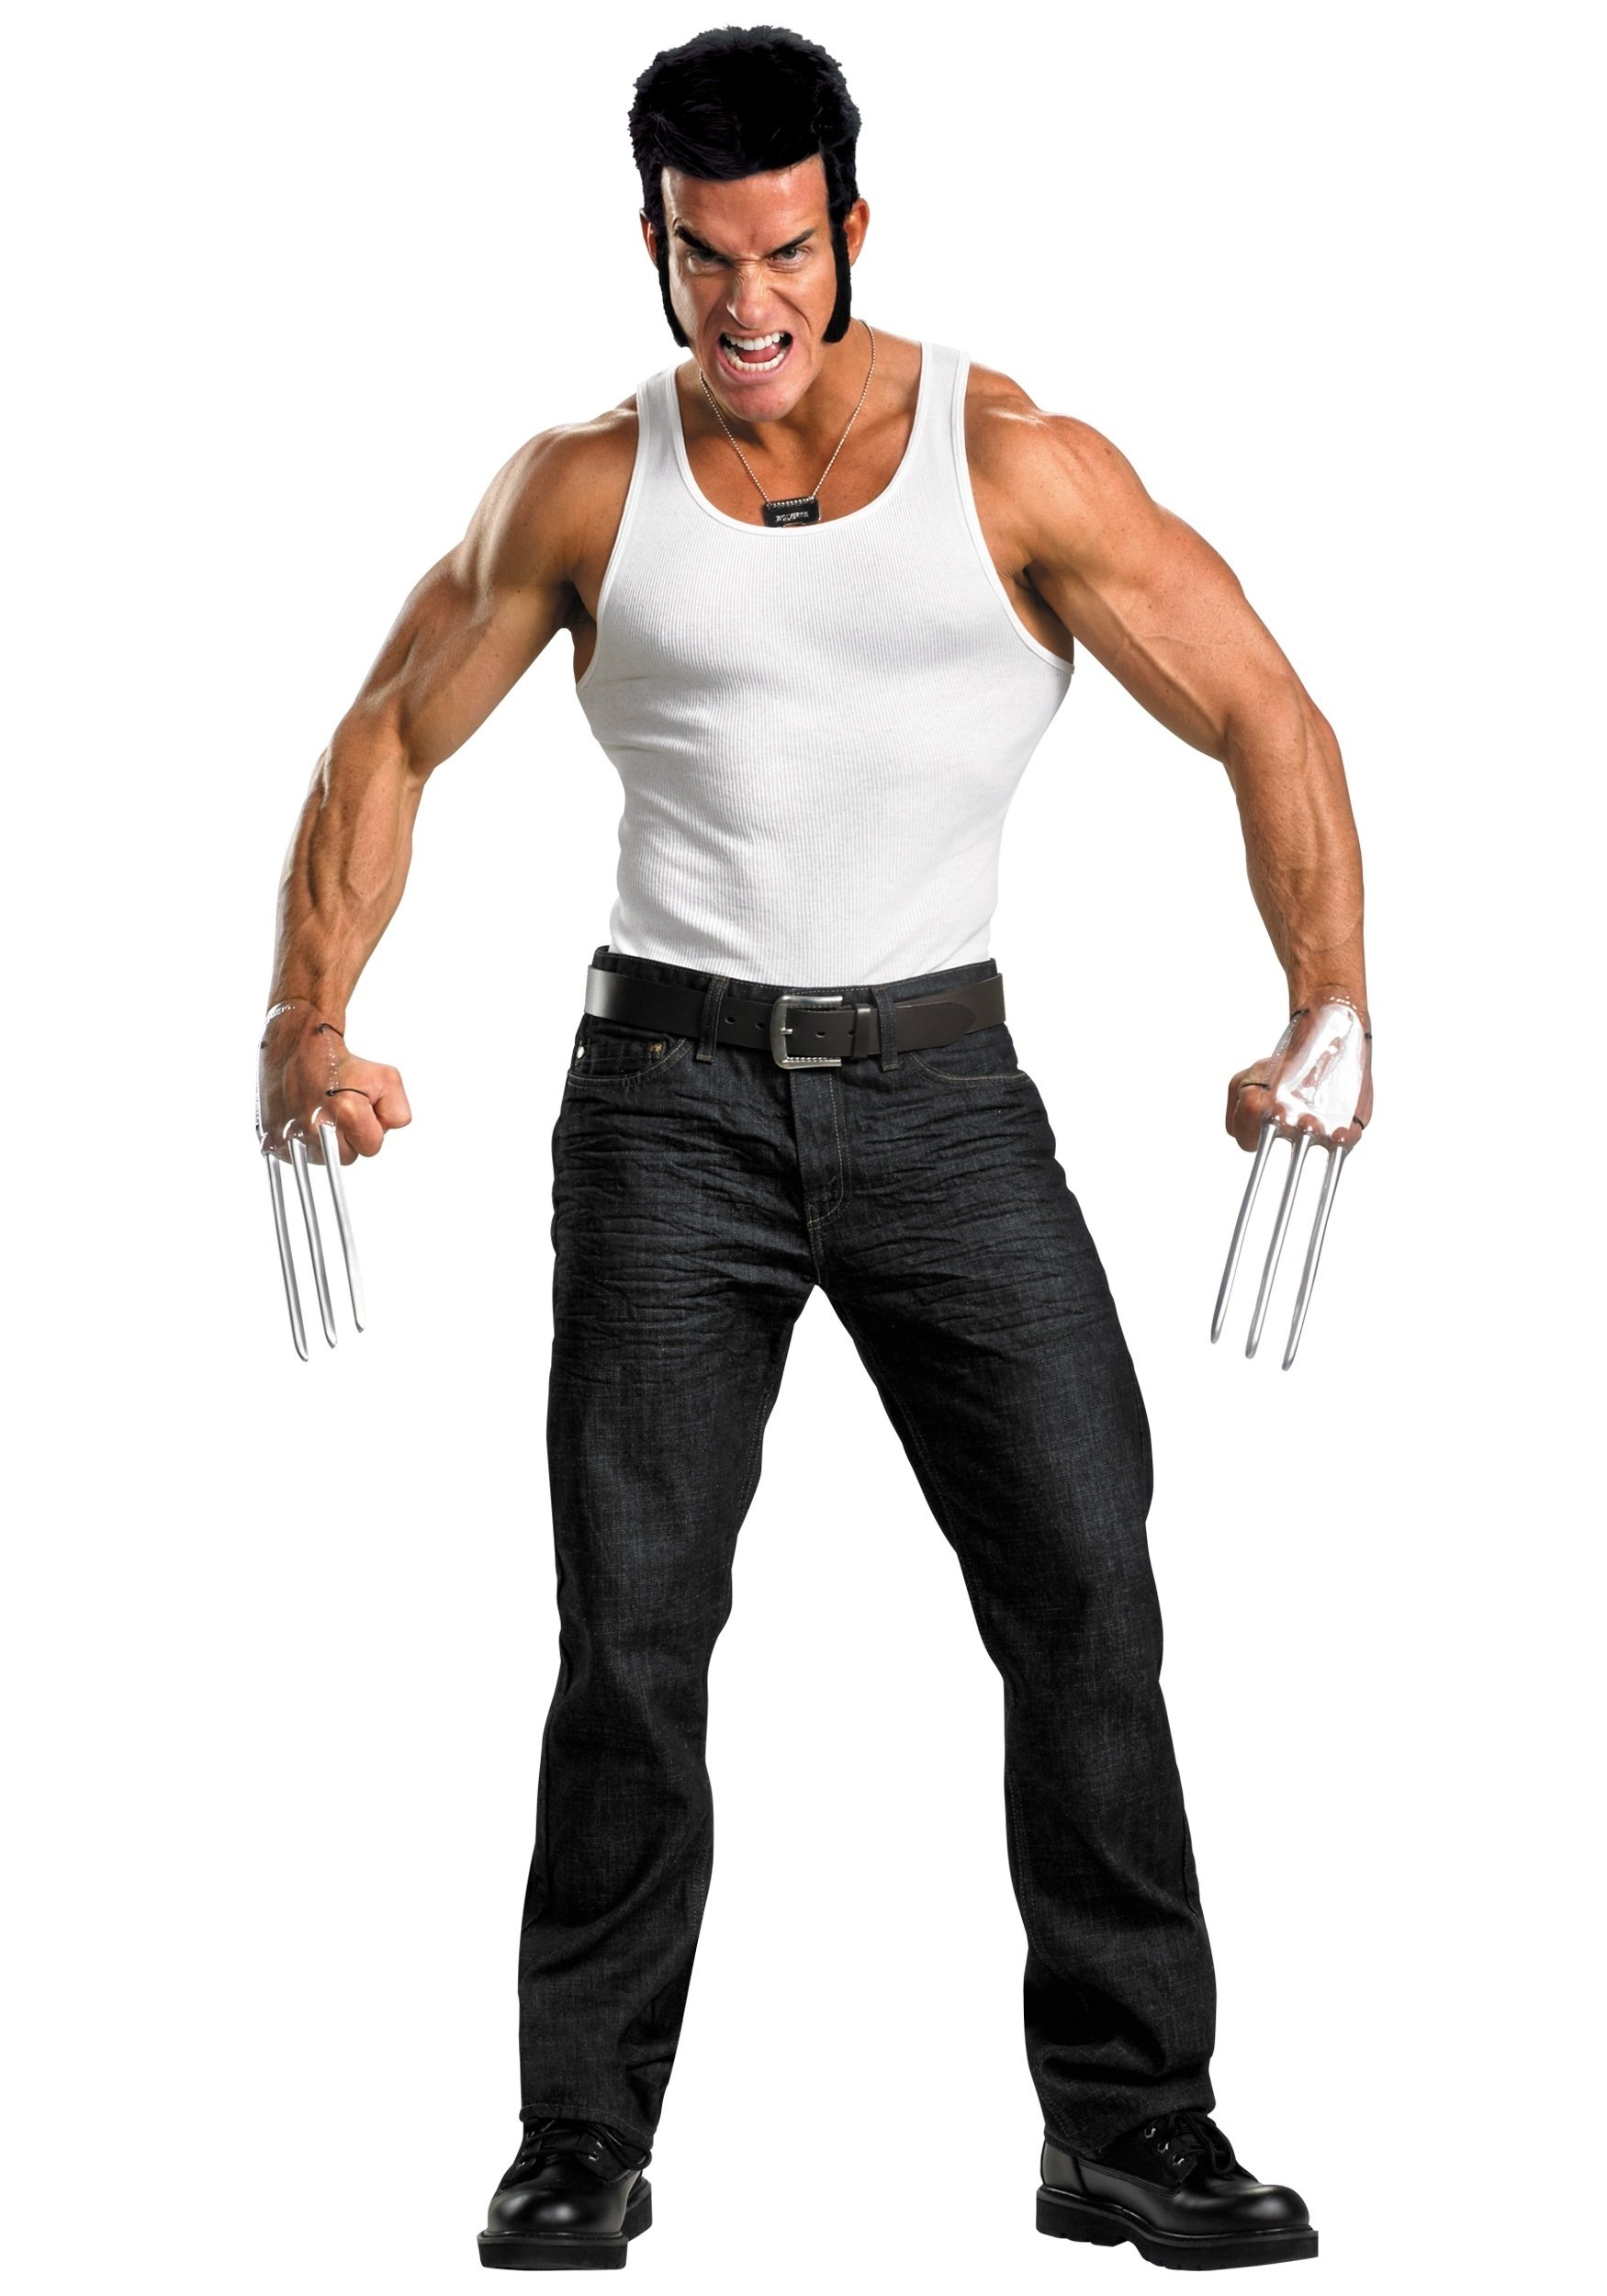 10 Ideal Halloween Costumes Ideas For Guys wolverine accessory kit halloween costume ideas 2016 halloween 1 2021